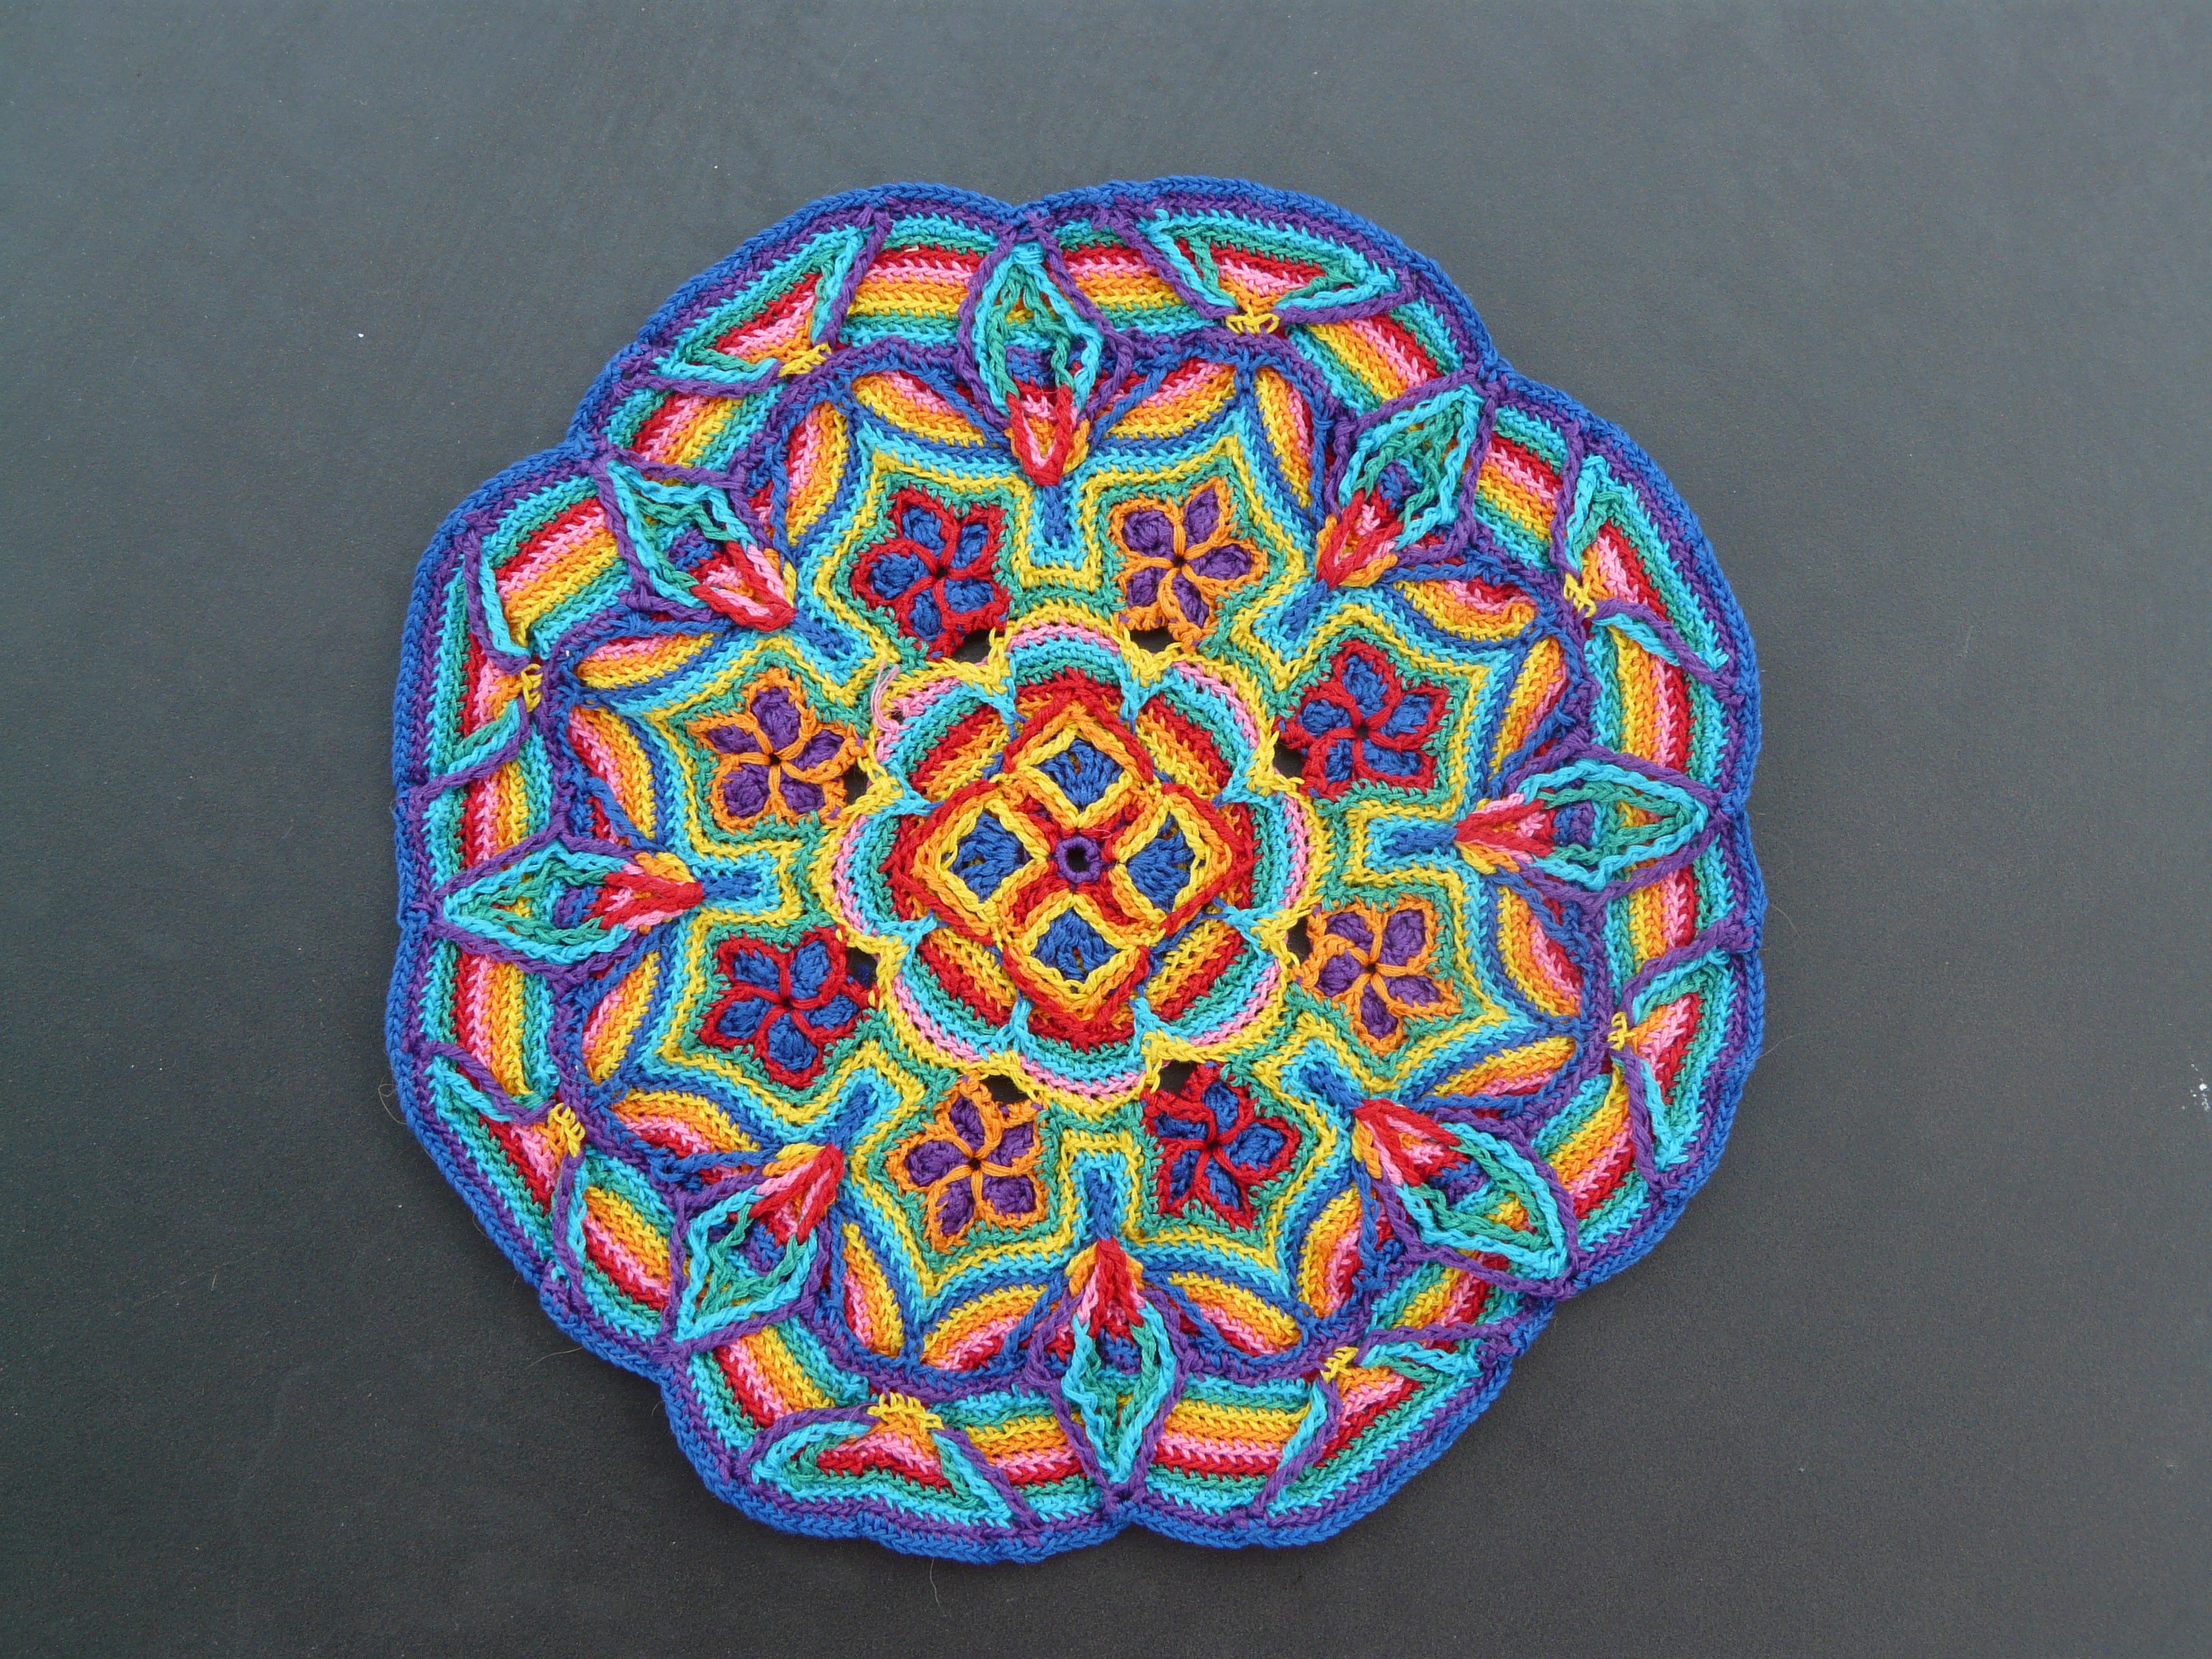 Free Mandala Crochet Patterns New What is Mandala Crochet Ambassador Crochet Of Innovative 45 Models Free Mandala Crochet Patterns